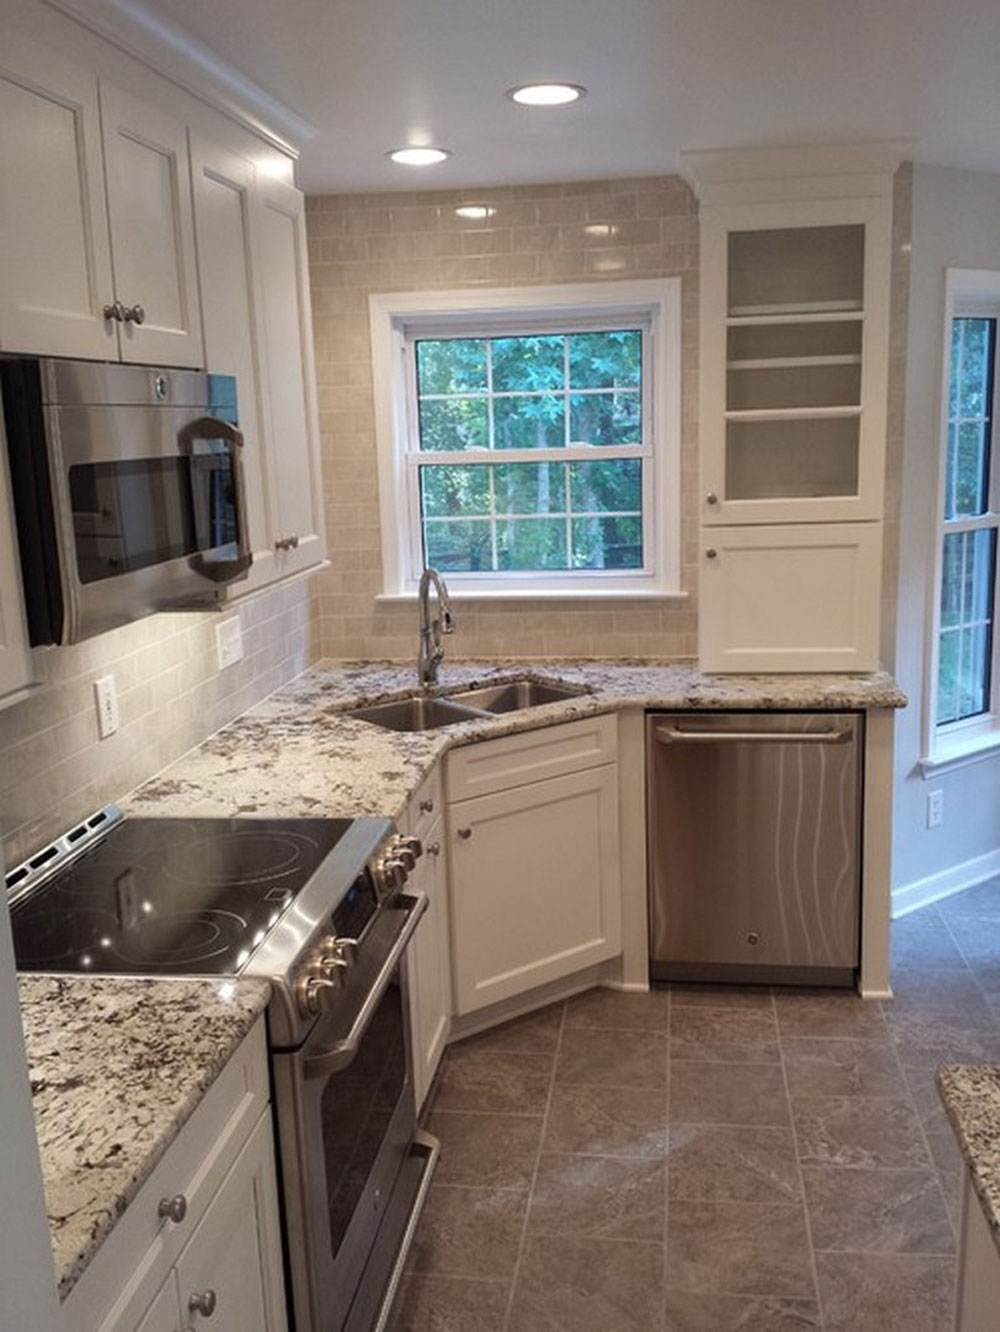 Corner Kitchen Sink Design Ideas To Try For Your House on Kitchen Sink Ideas  id=78153